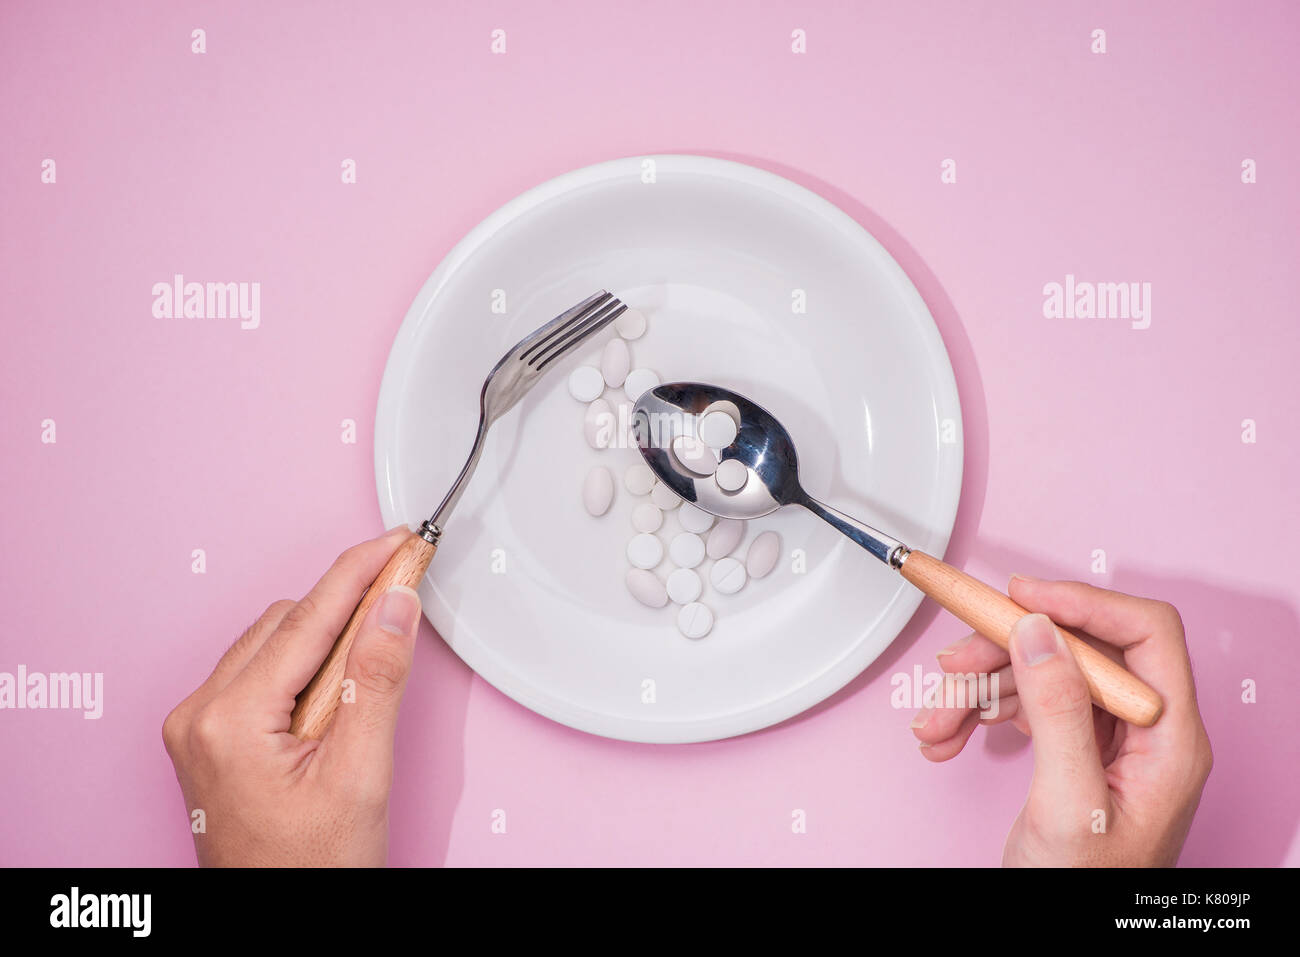 Top view of man's hands at dining table holding a fork and knife above dish with pills over pink background. - Stock Image